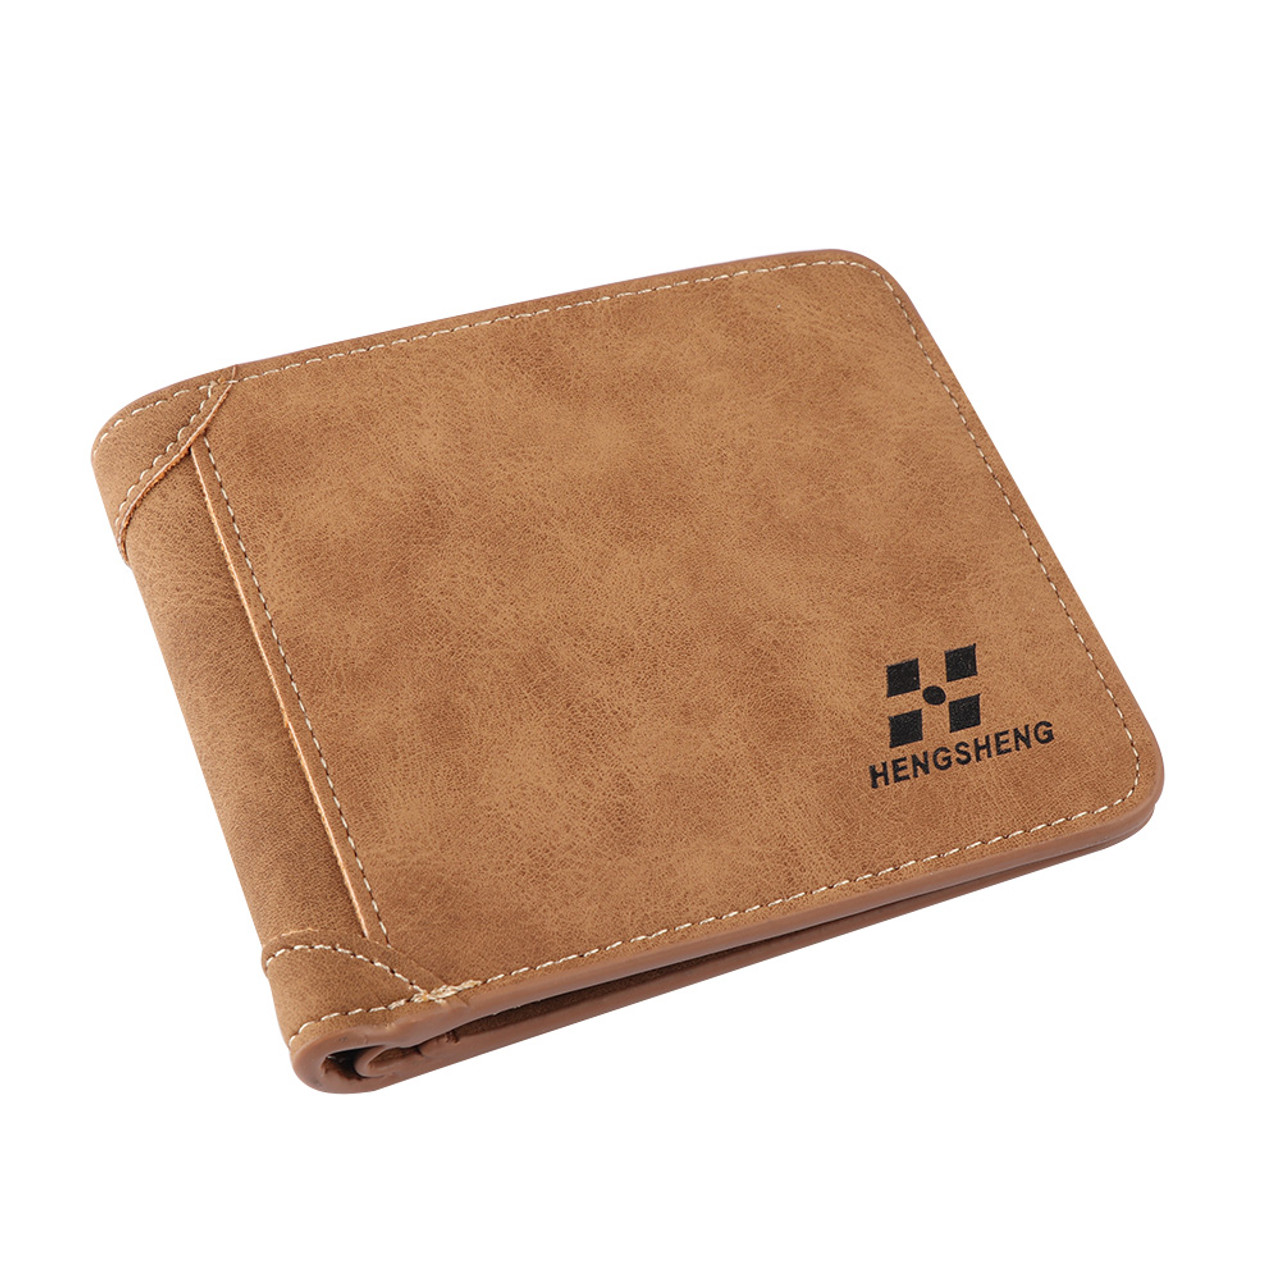 16ab9cc4020 New fashion Men Portable PU Leather Purse Wallet ID Credit Card Holder  Clutch Bifold Coin Pockets